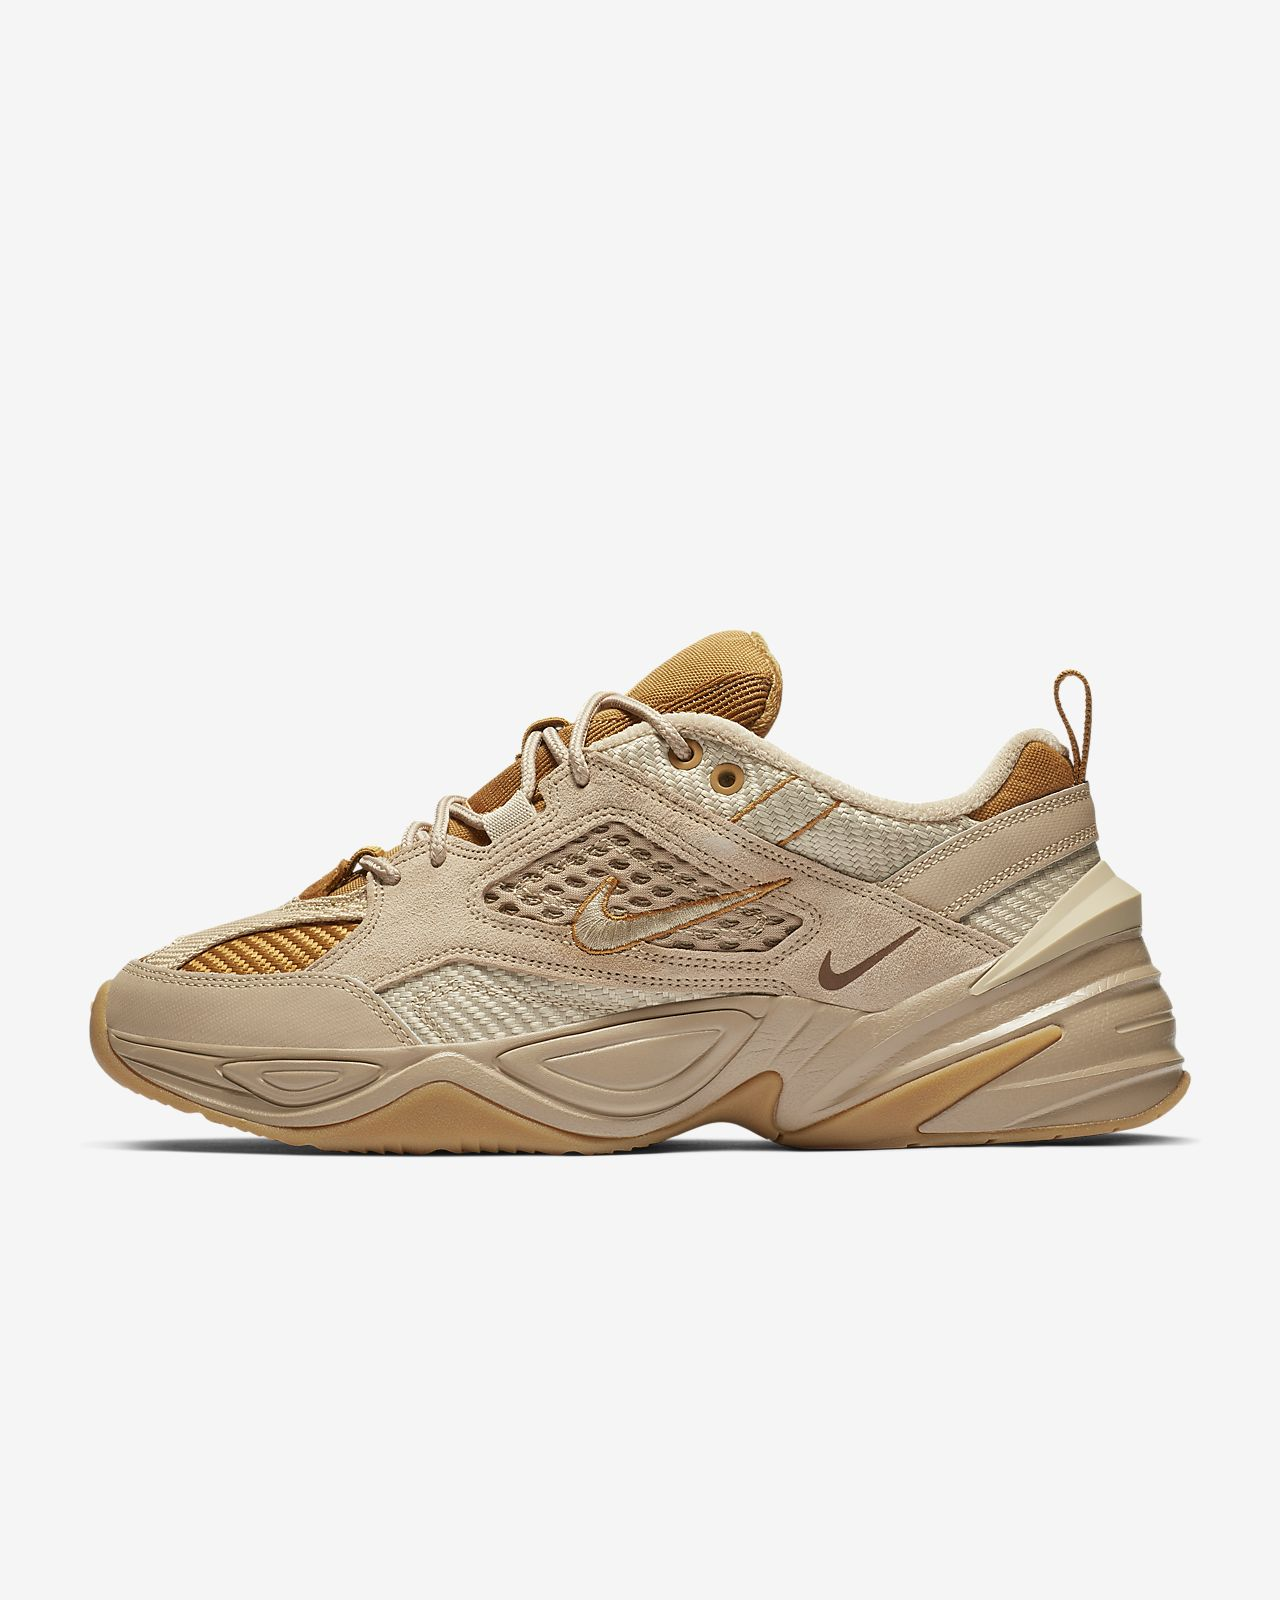 Pour Nike Sp HommeBe Chaussure M2k Tekno oxBdCer